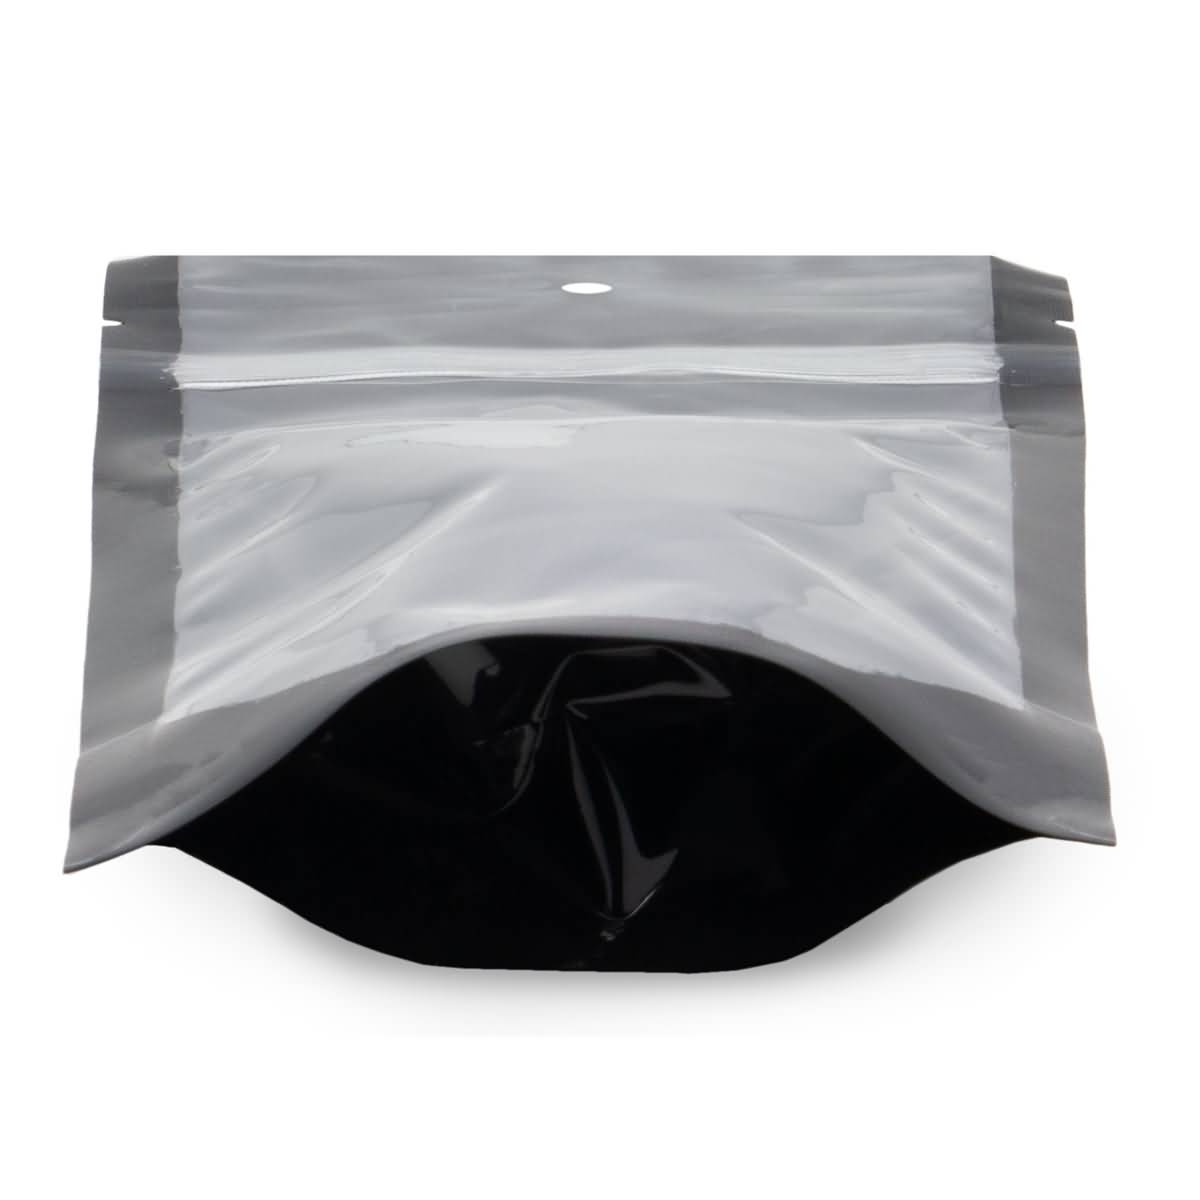 NYSM CareClear/Black 5×8.5×3 – 100 Pack